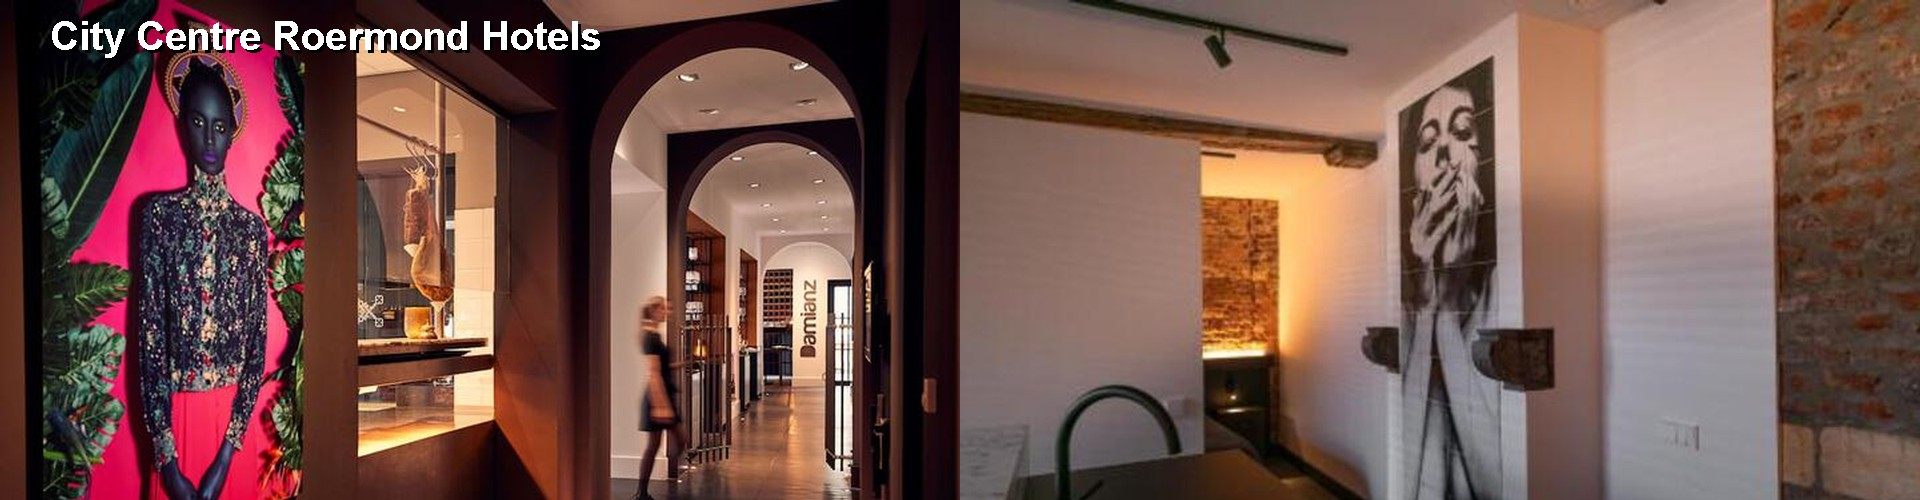 3 Best Hotels near City Centre Roermond